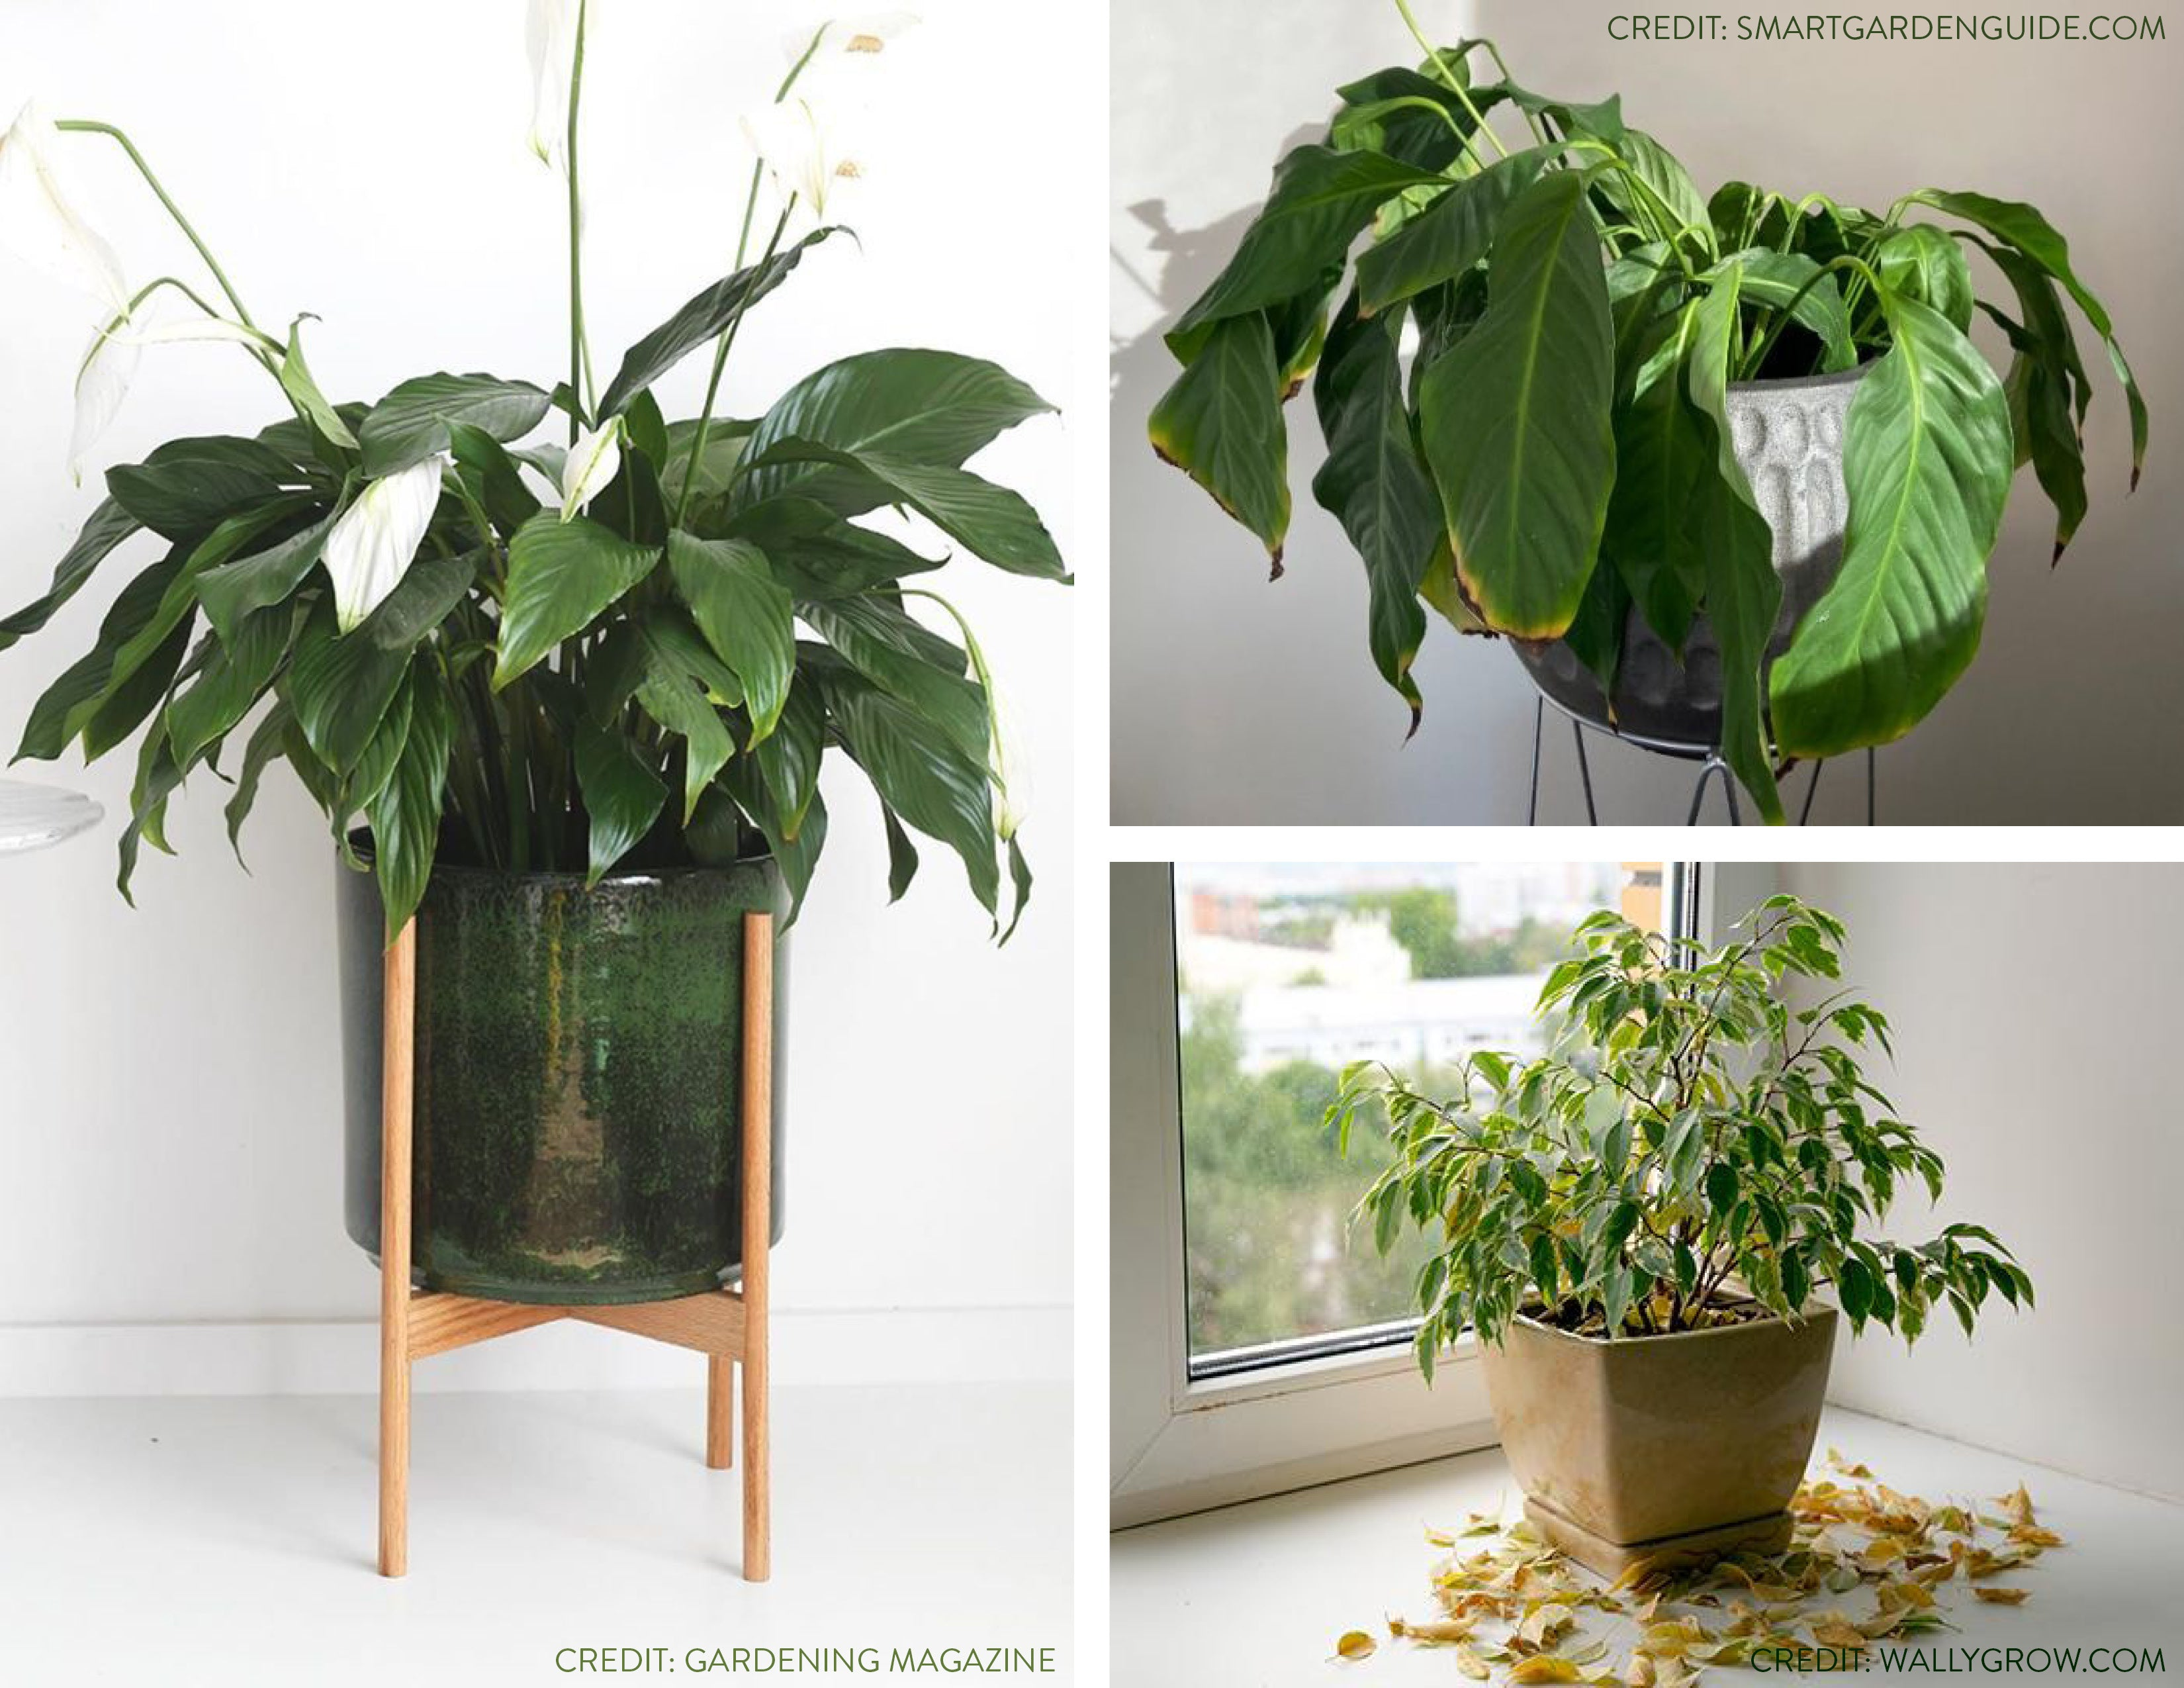 plant mistakes wildflora tips watering over under too much little light pot